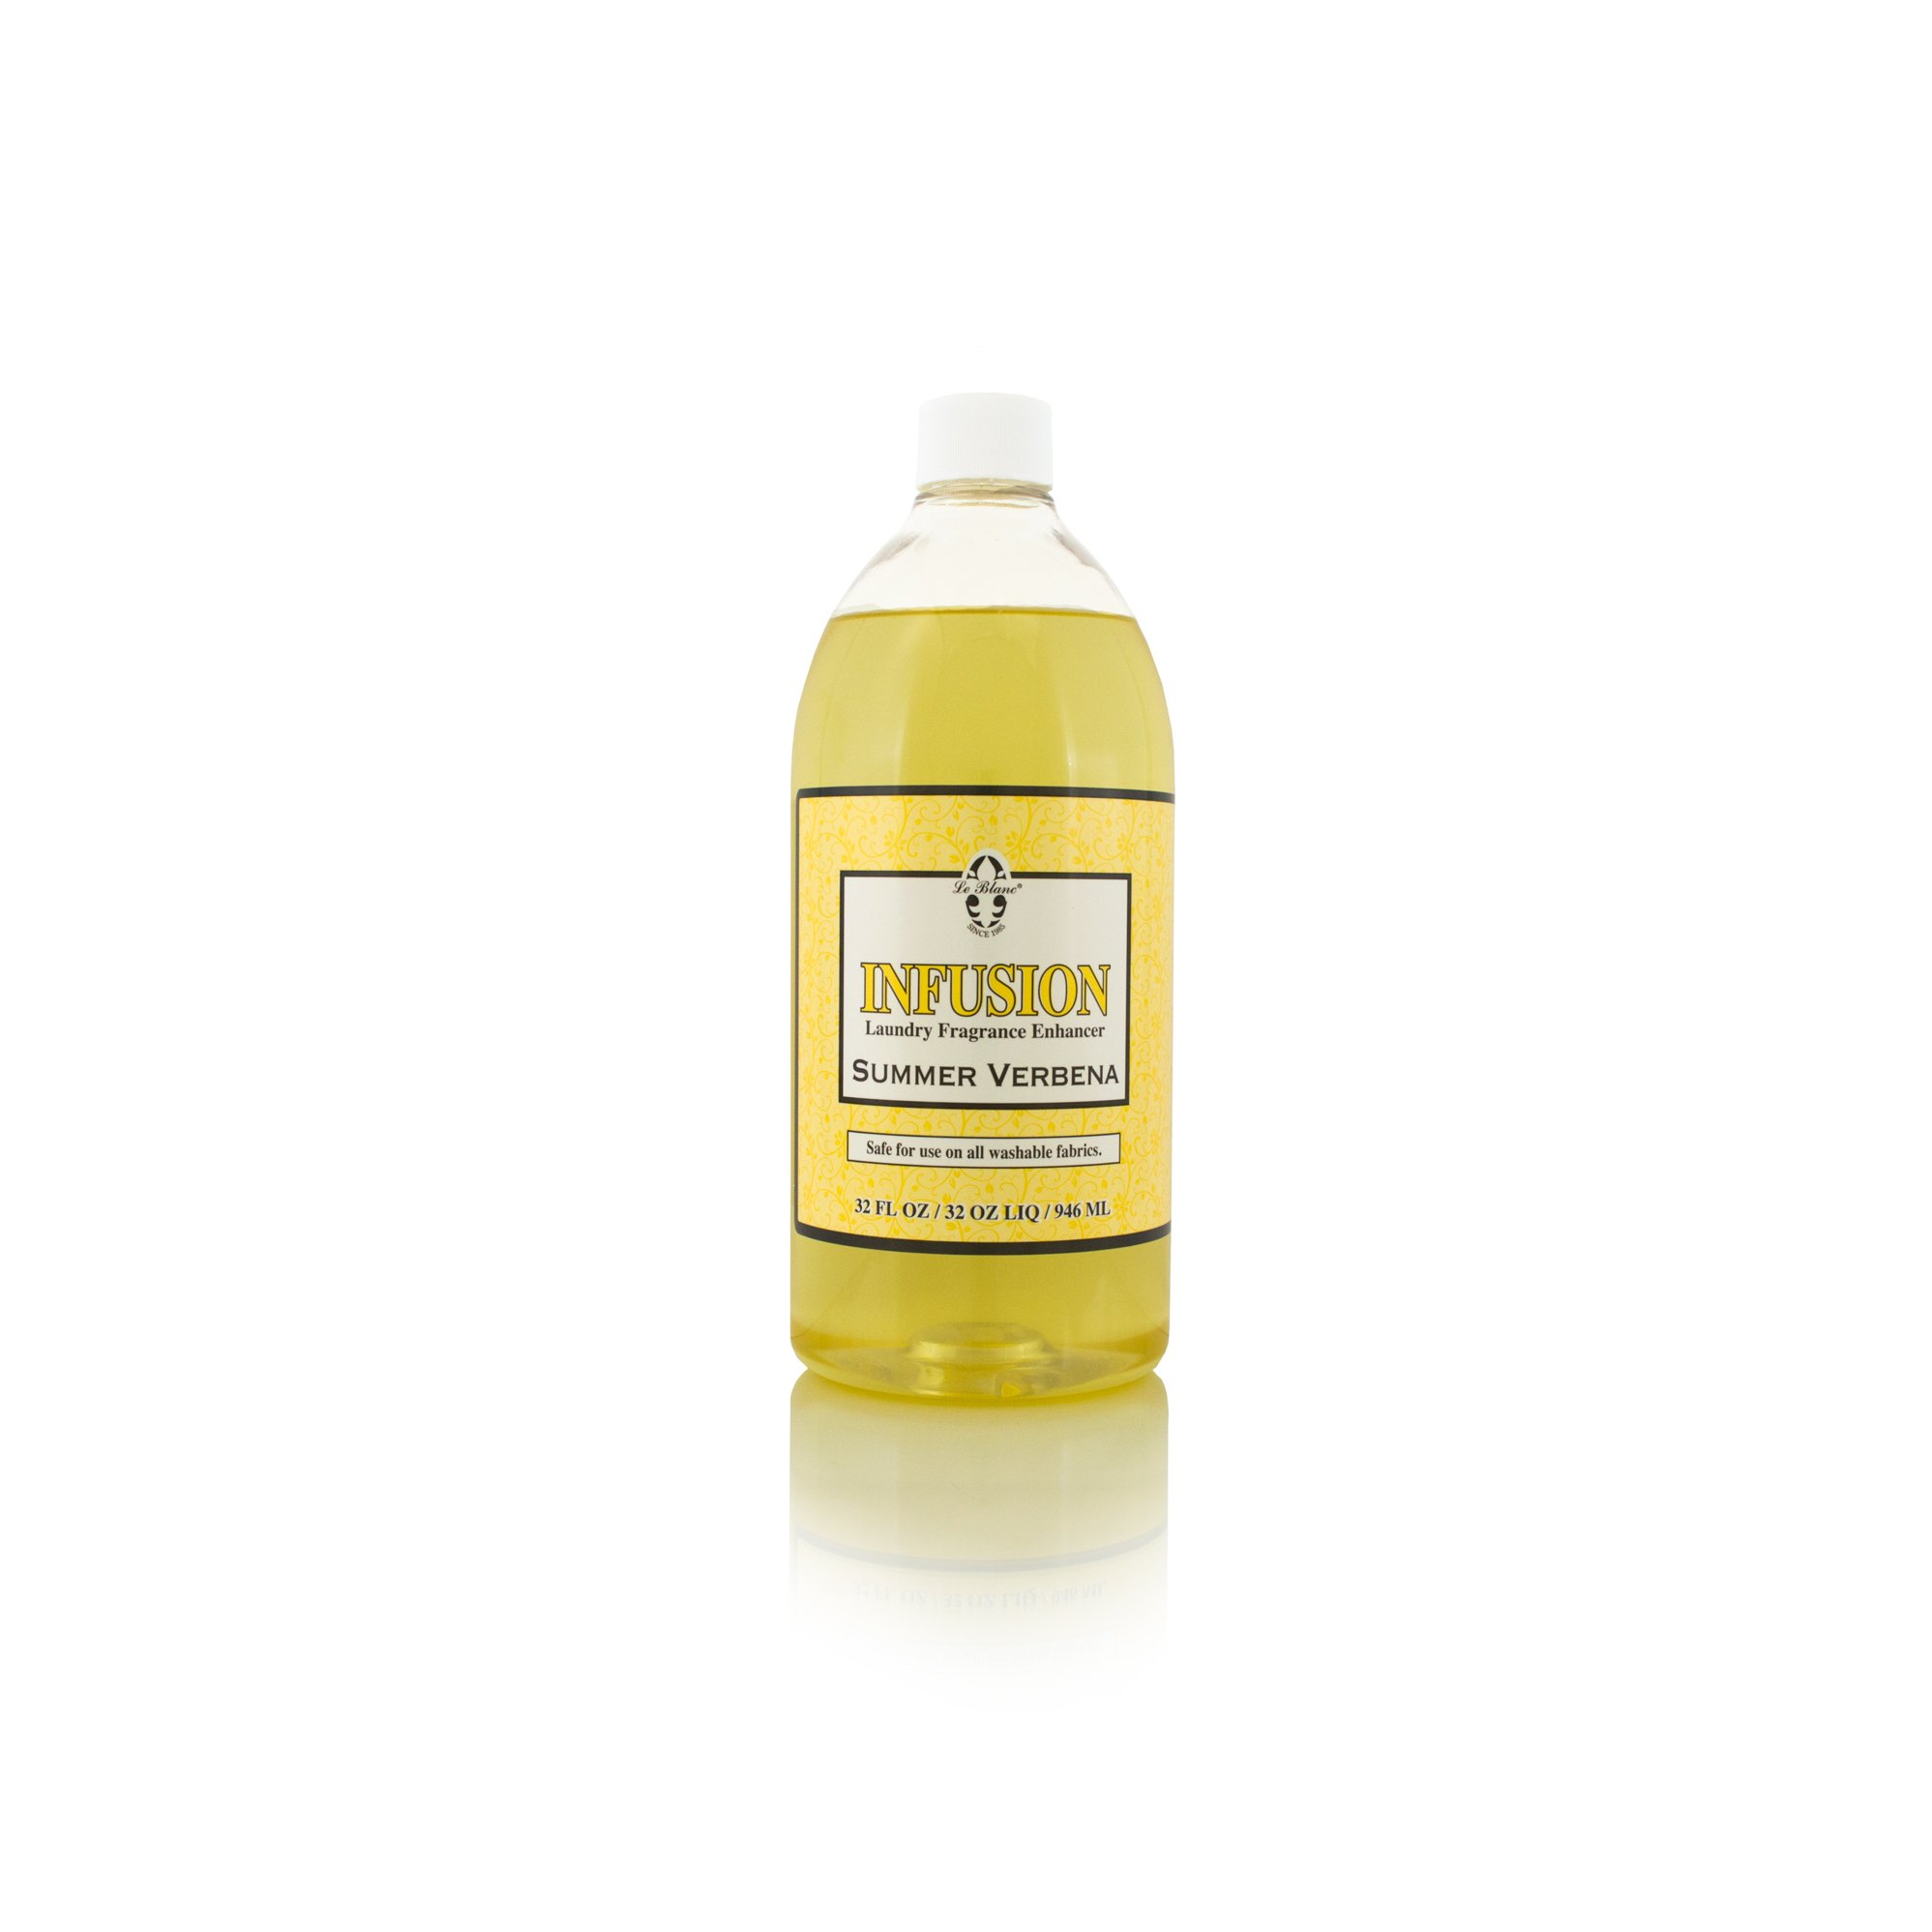 Le Blanc® Summer Verbena Fragrance Infusion - 32 FL. OZ, 3 Pack by LE BLANC (Image #1)